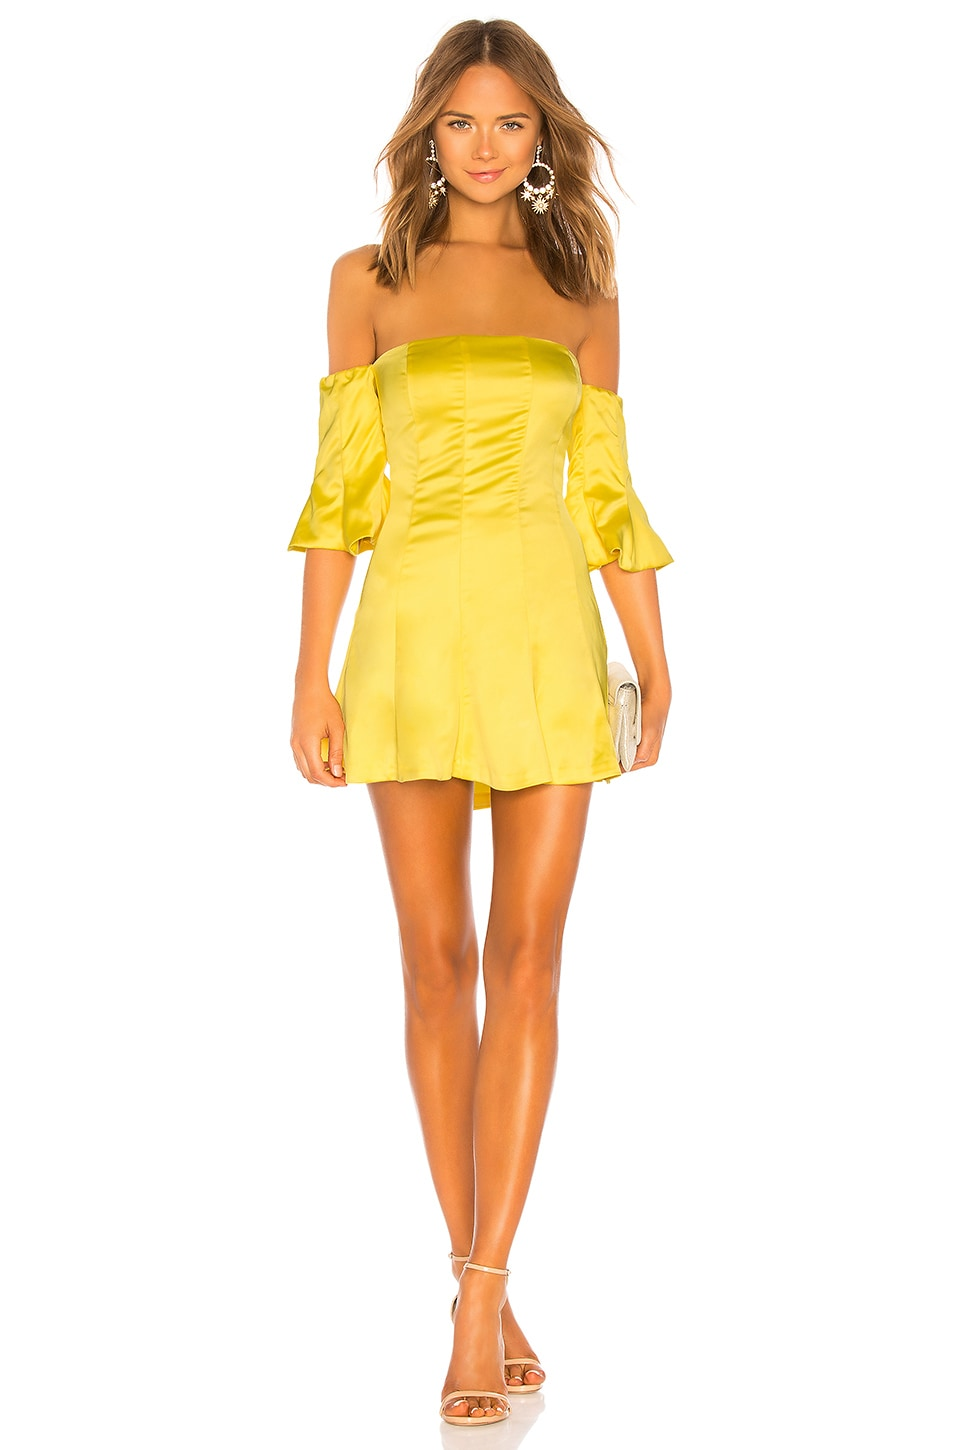 NBD Iris Mini Dress in Yellow